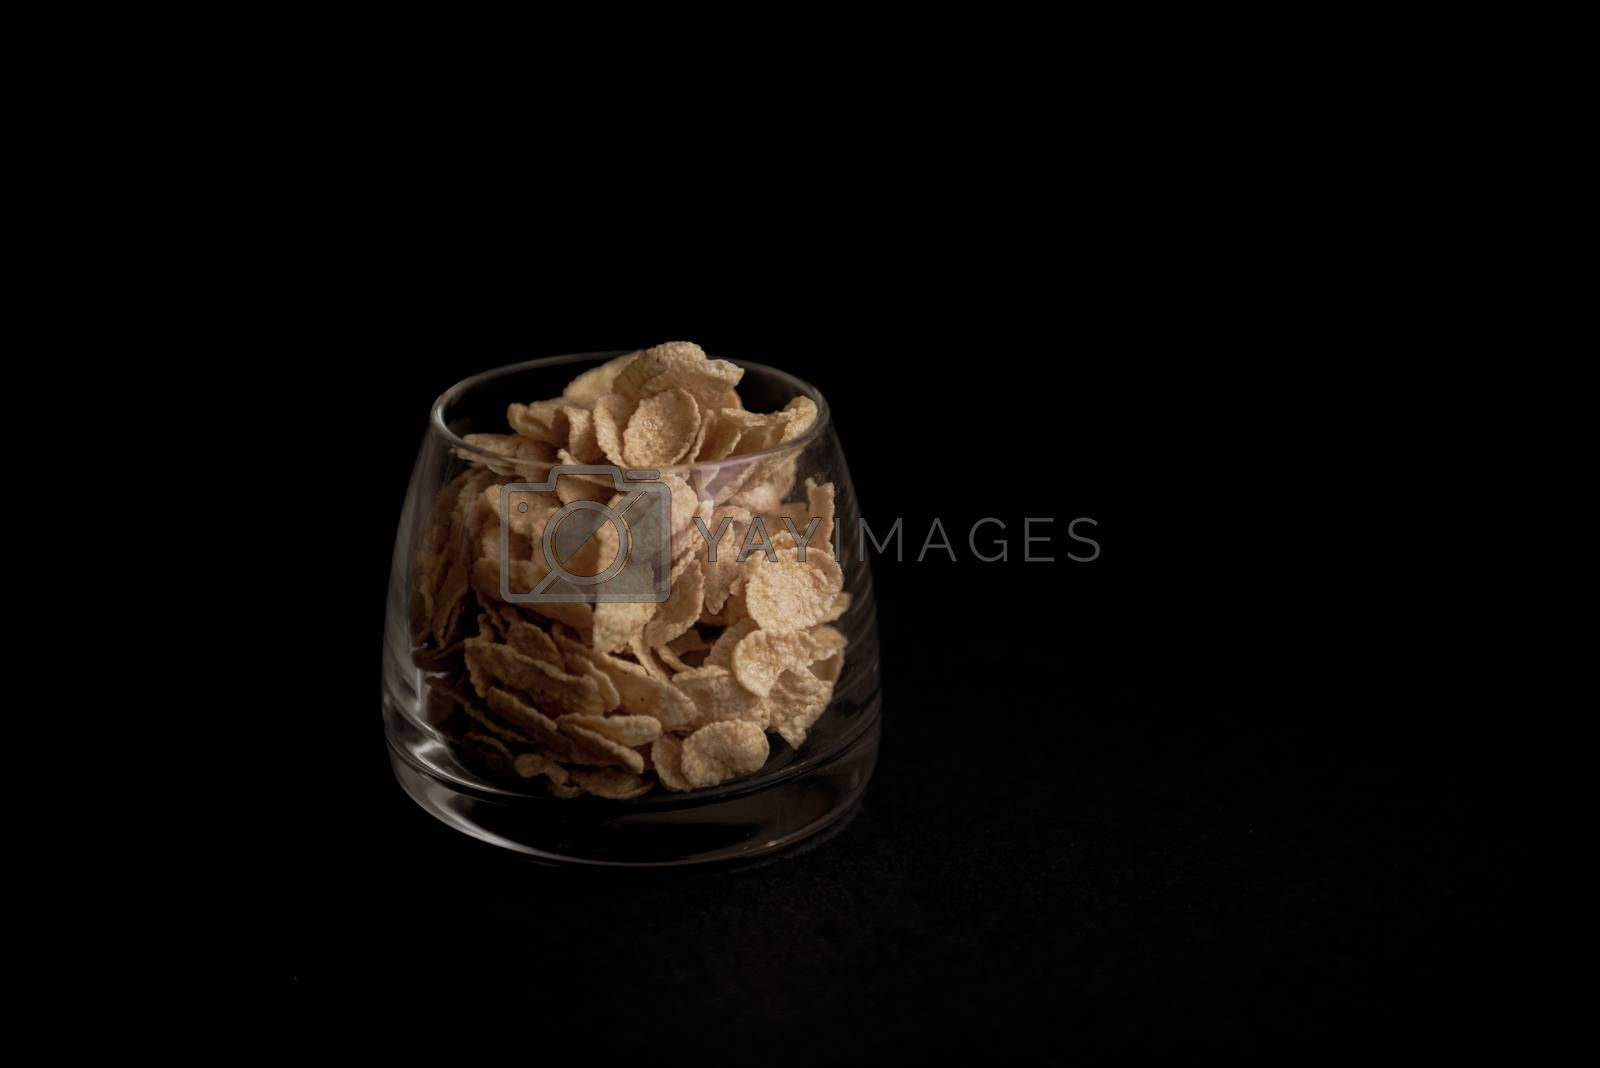 cornflakes in a transparent glass against a black background with place for text